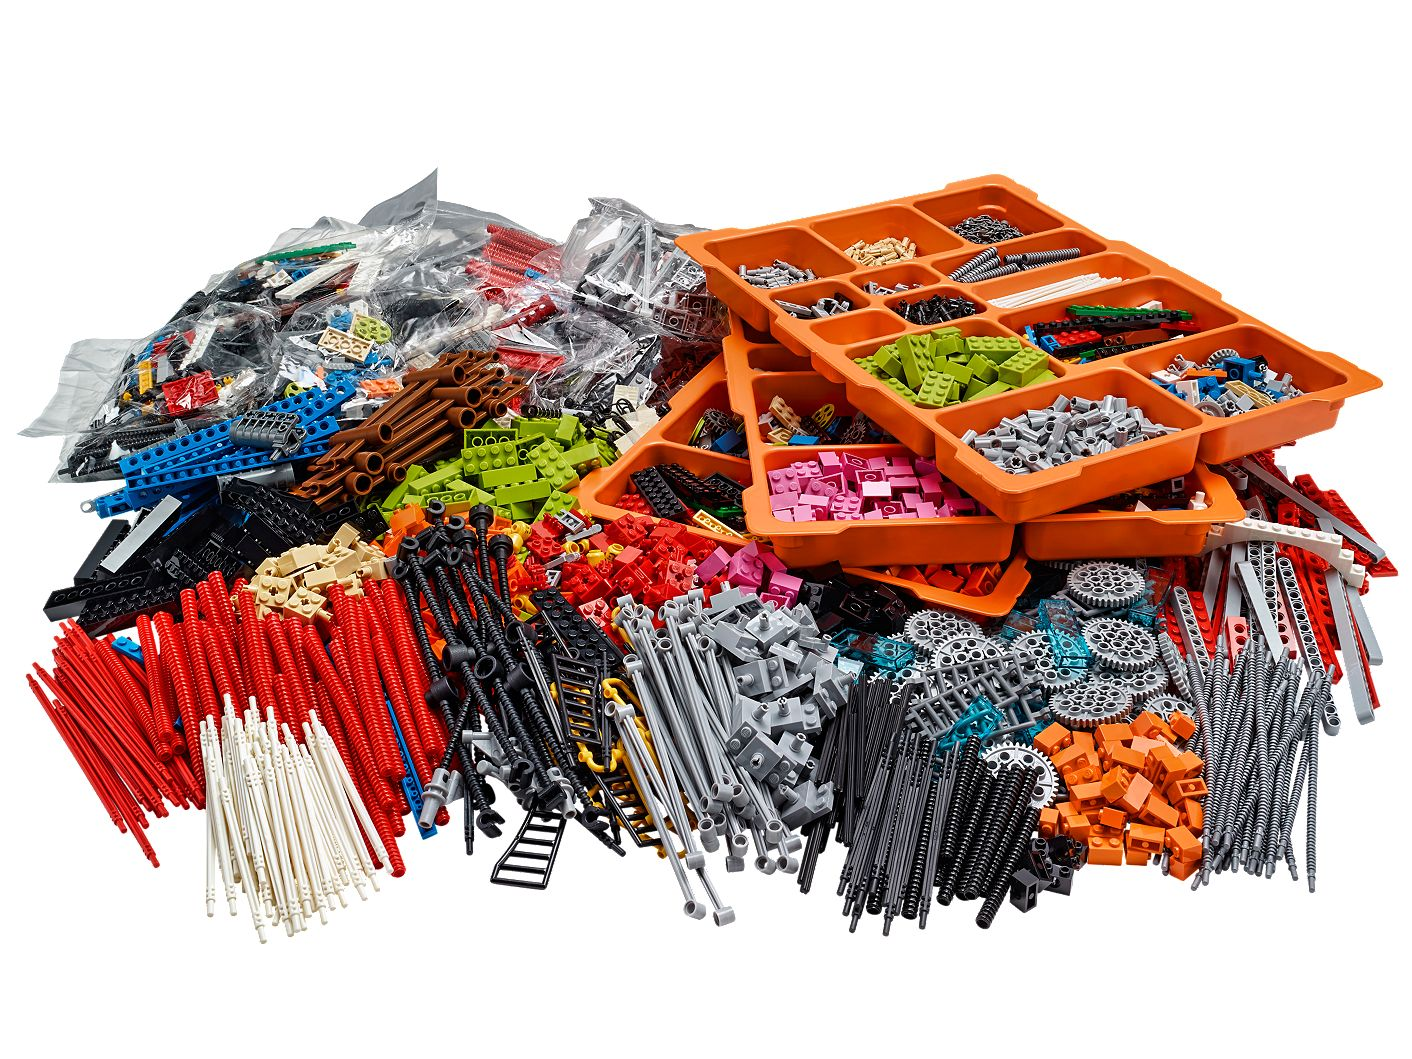 Welche Sets brauche ich: LEGO® SERIOUS PLAY® Connectors Kit